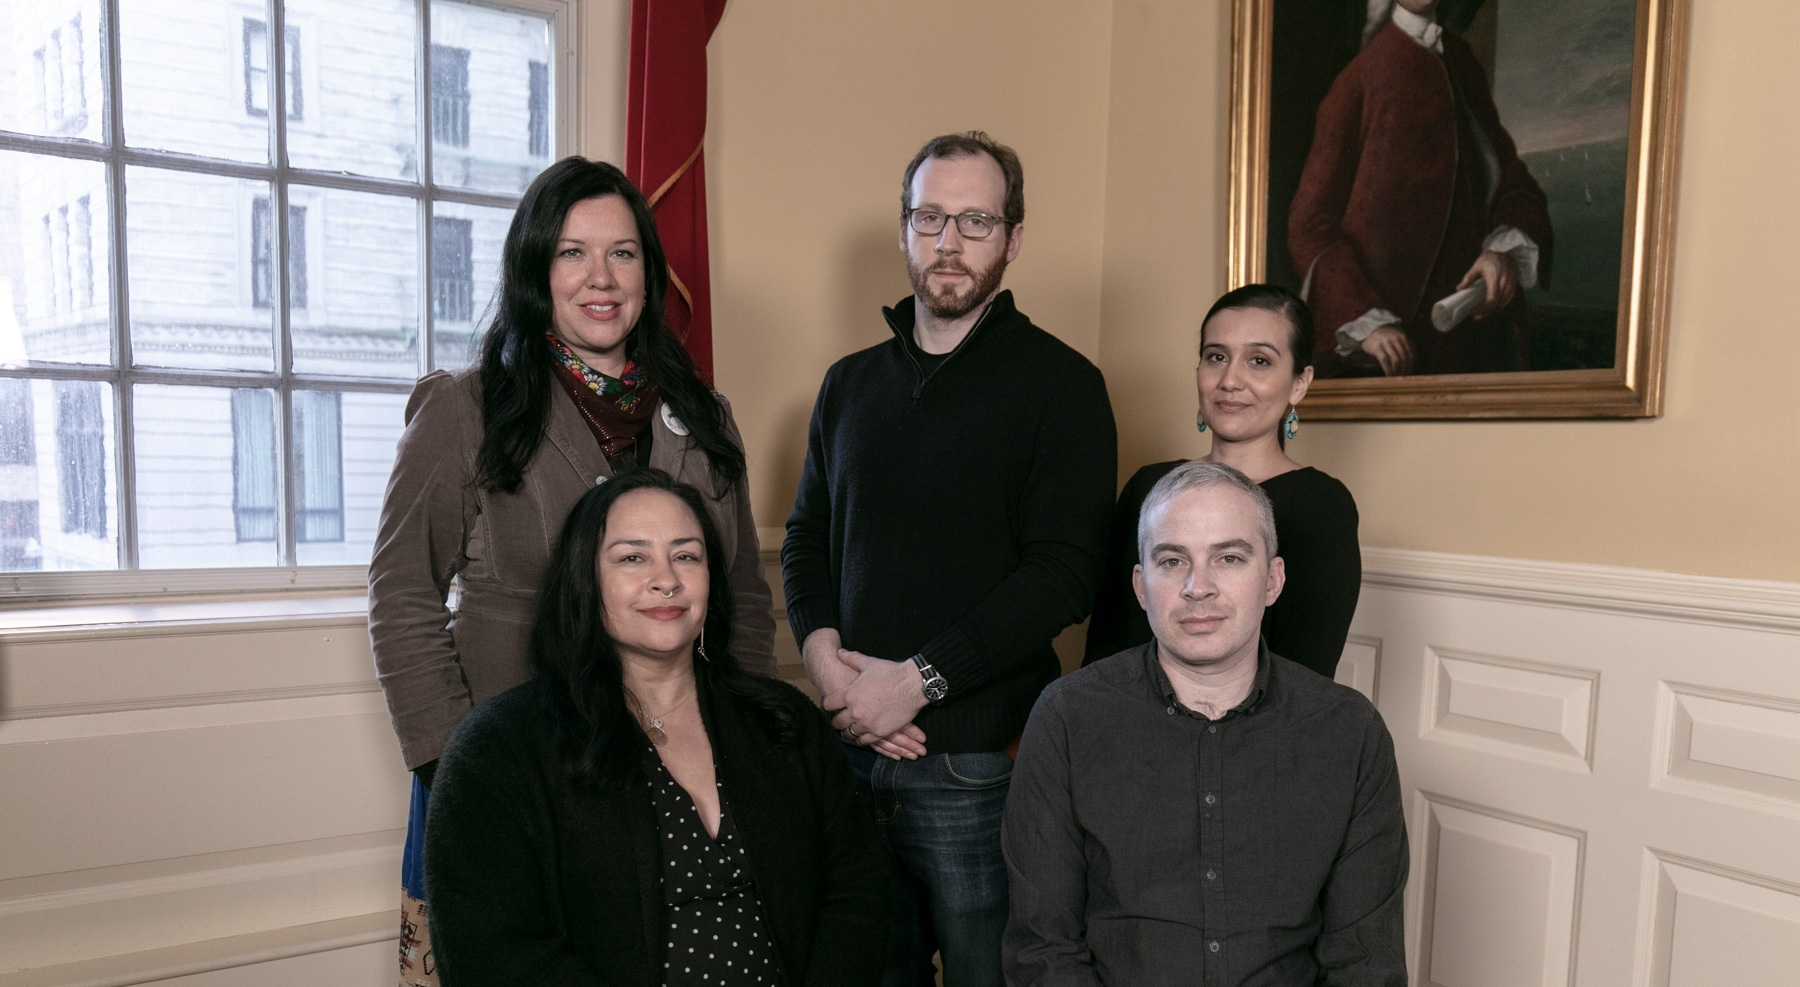 Bounty co-directors from top row left: Dawn Neptune Adams, Ben Pender-Cudlip, Maulian Dana, Tracy Rector, and Adam Mazo